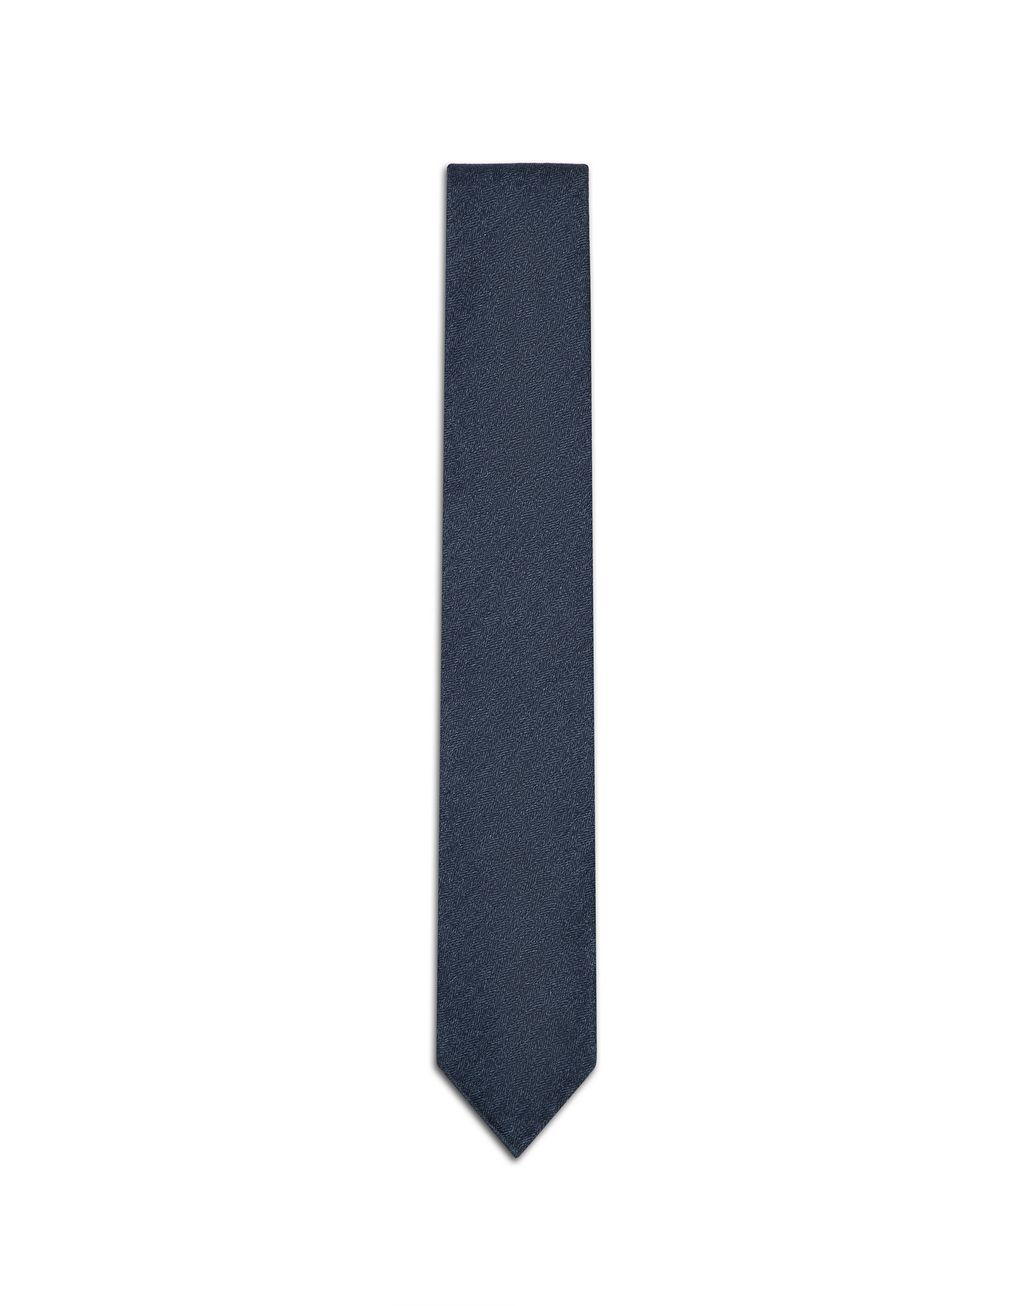 BRIONI Blue Navy Chevron Unlined Tie Tie & Pocket Square Man f